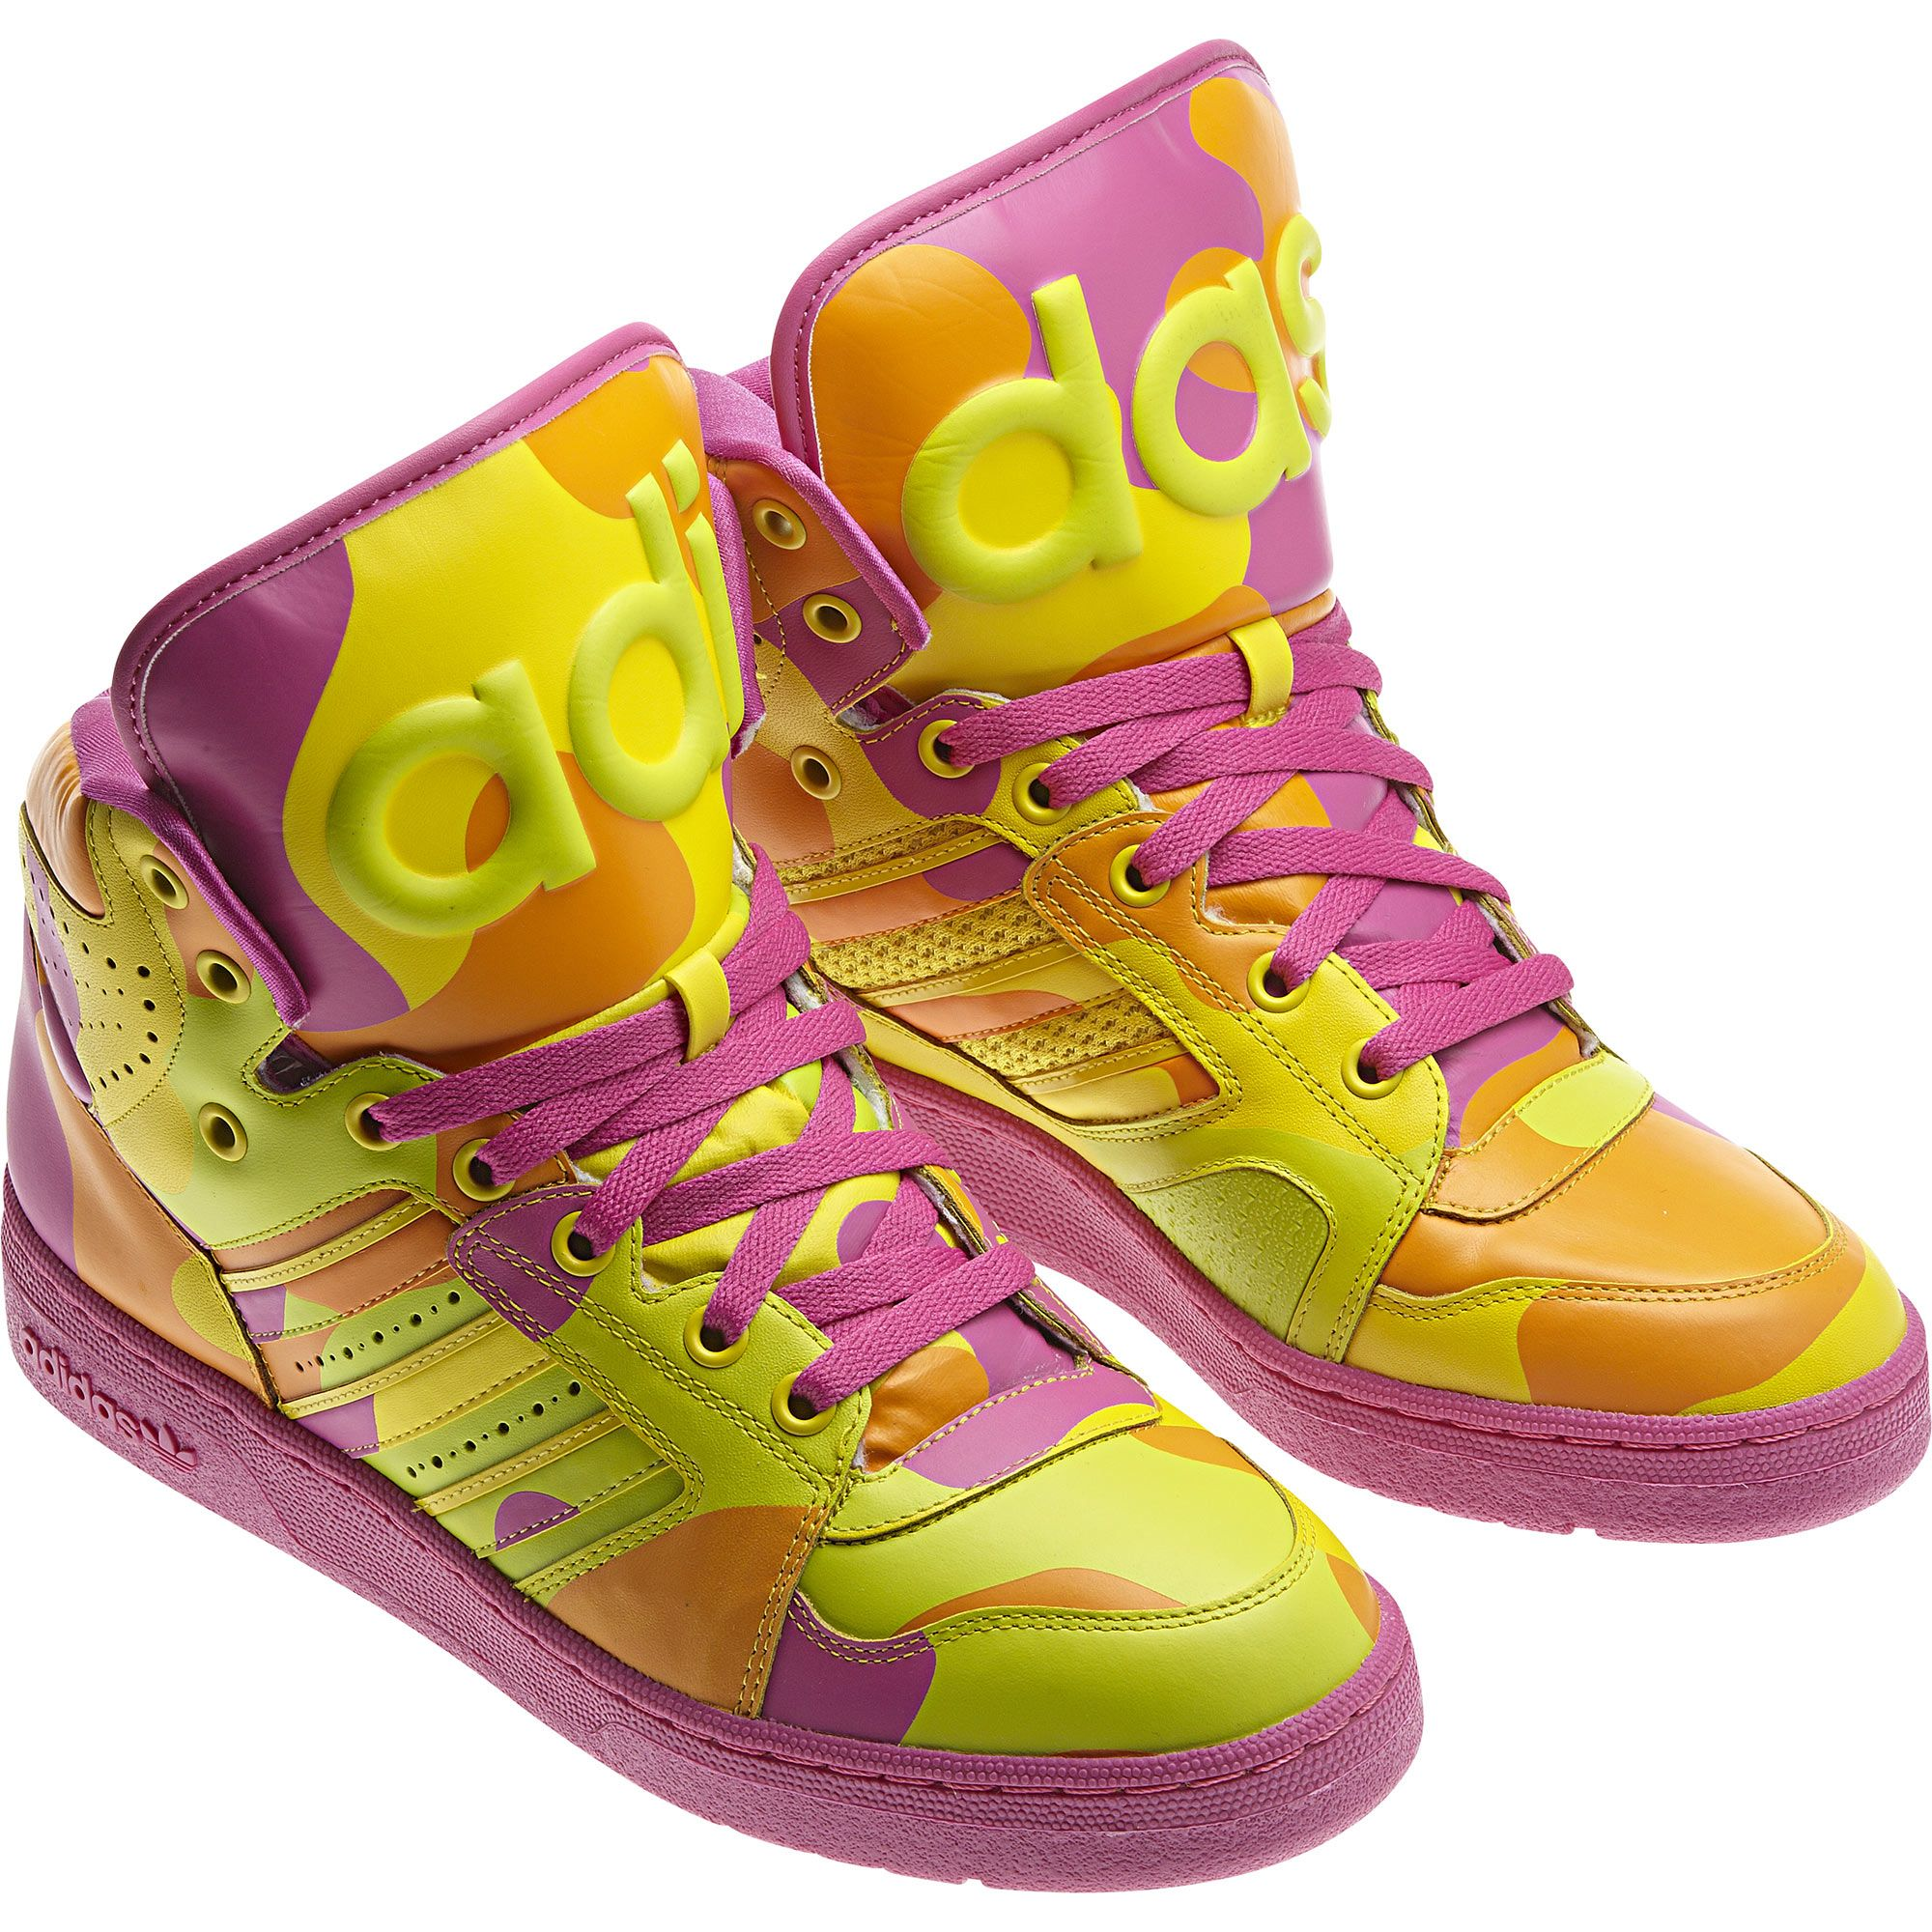 timeless design a631f 11096 Adidas Jeremy Scott Instinct Hi Neon Camo Shoes  jeremyscott  shoes  adidas